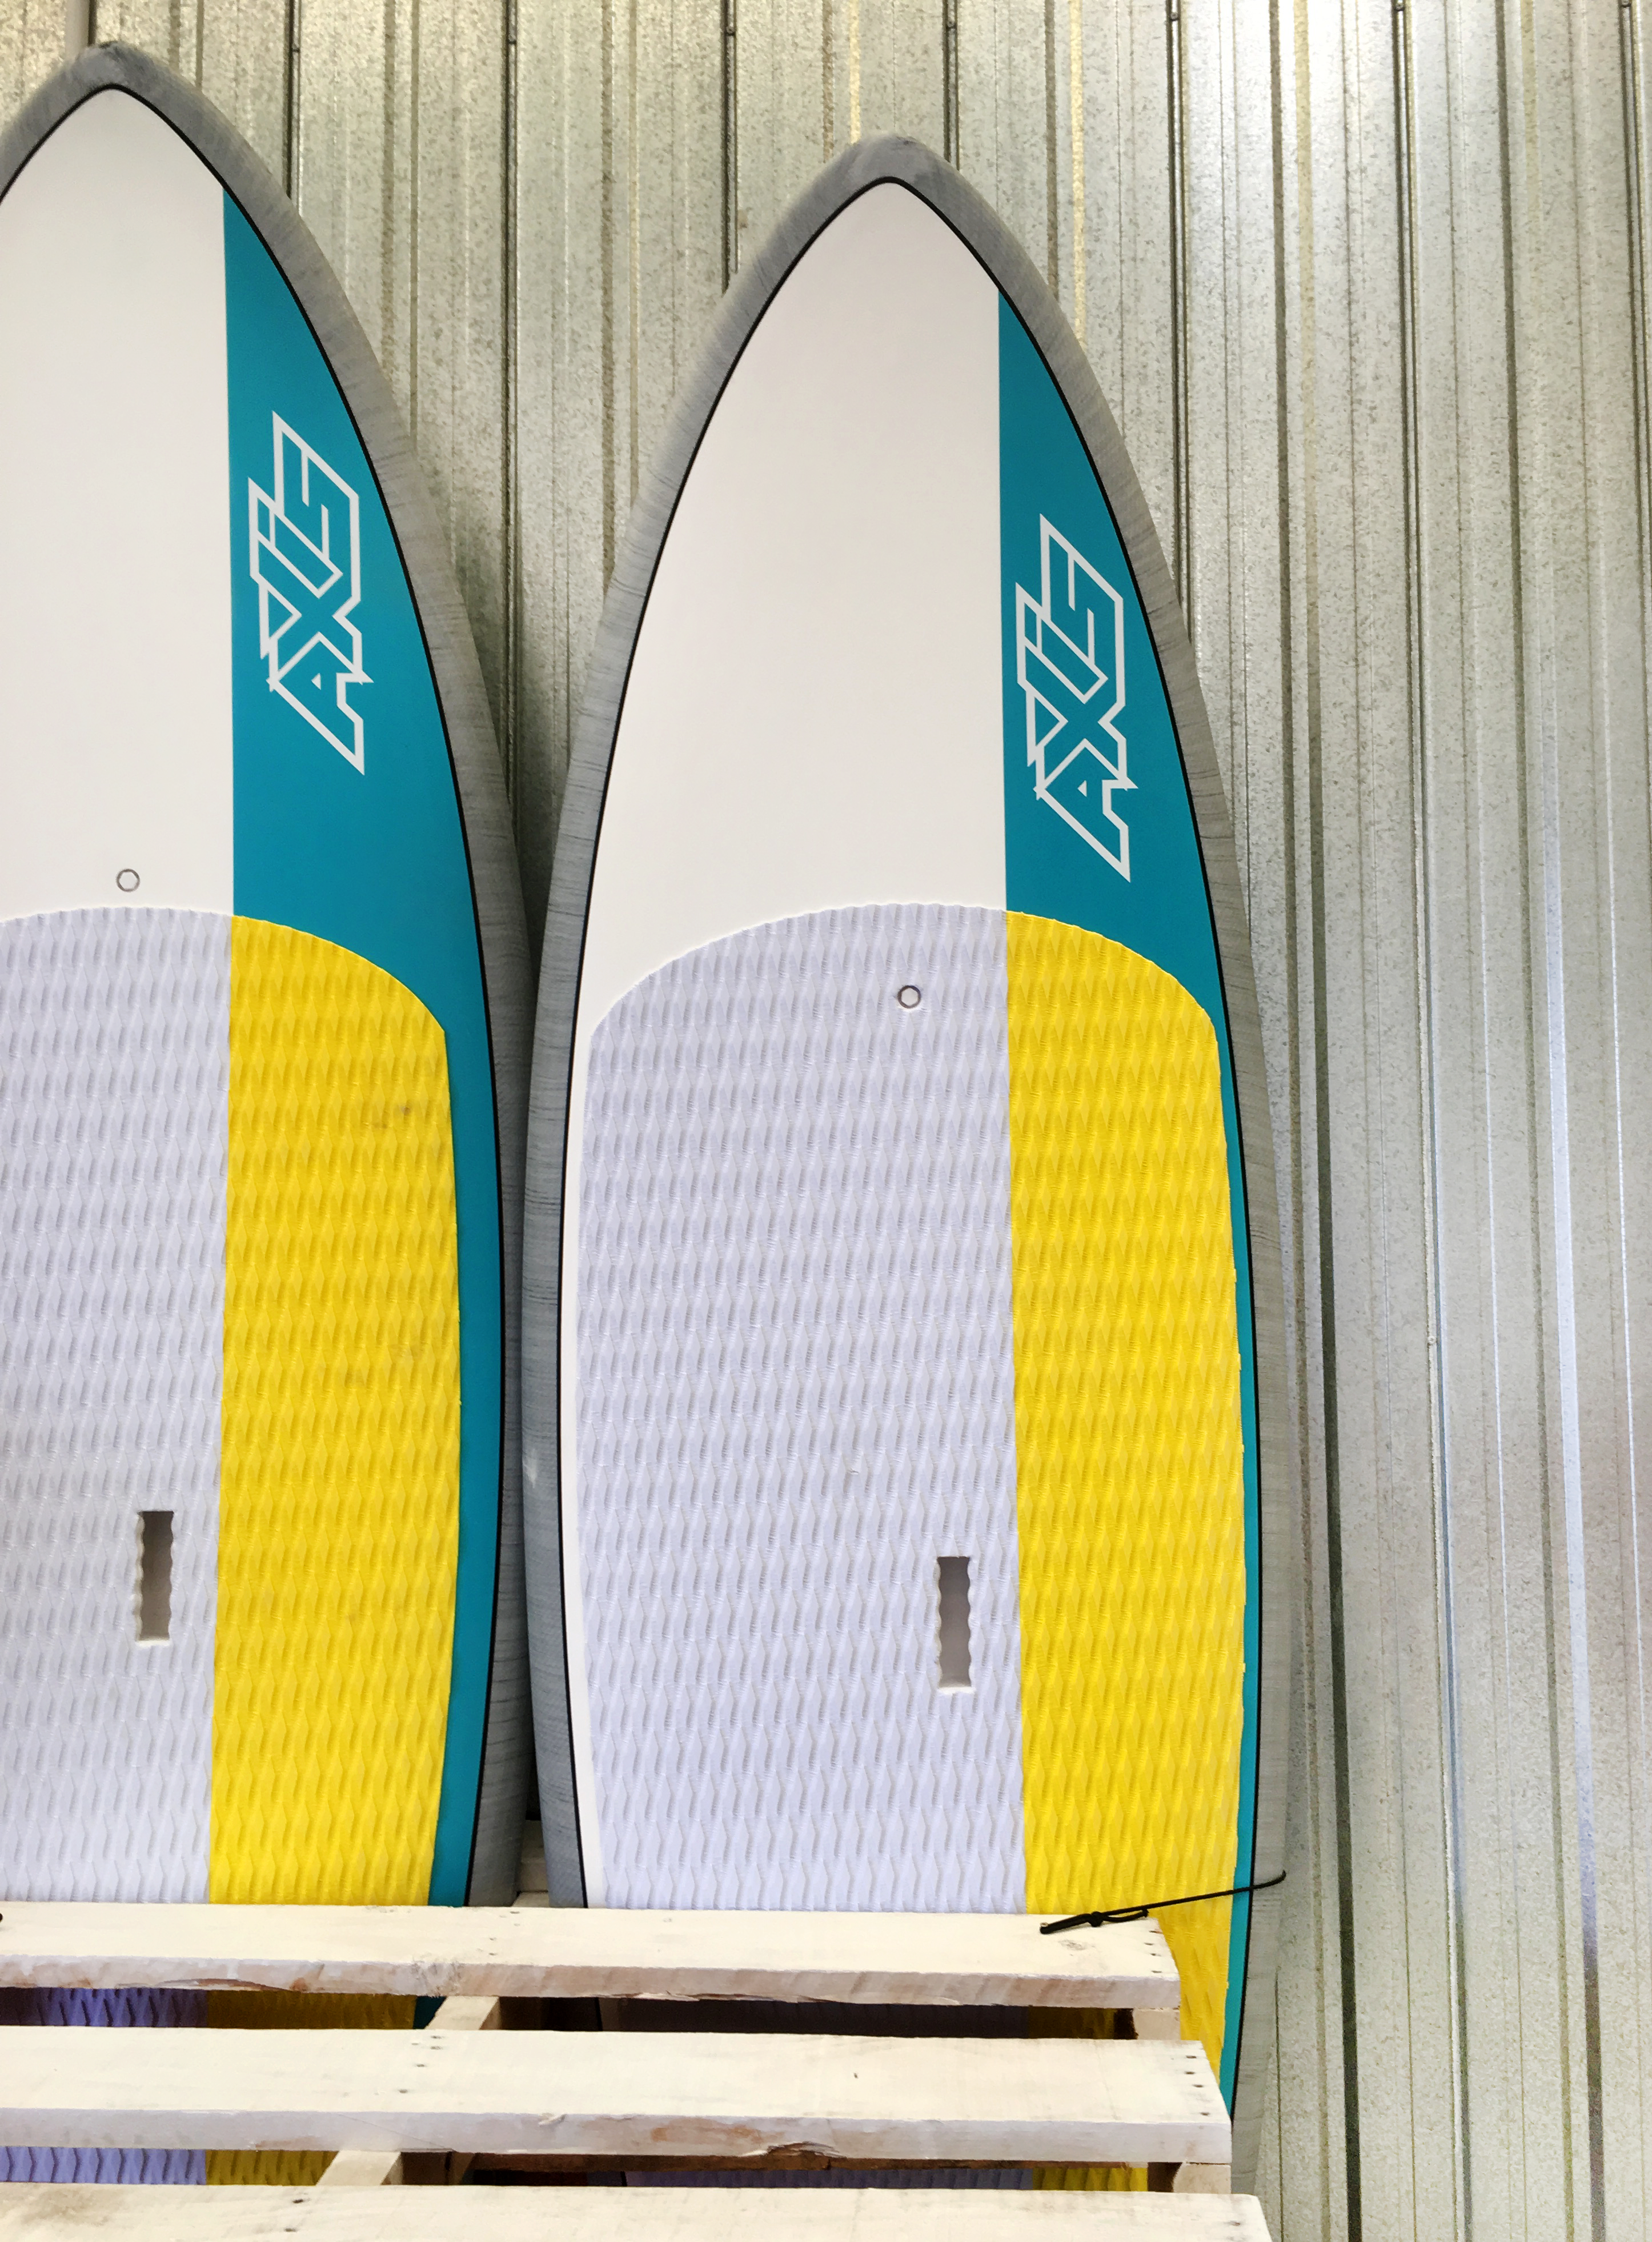 AXIS Surf Standup Paddleboard, Carbon Line